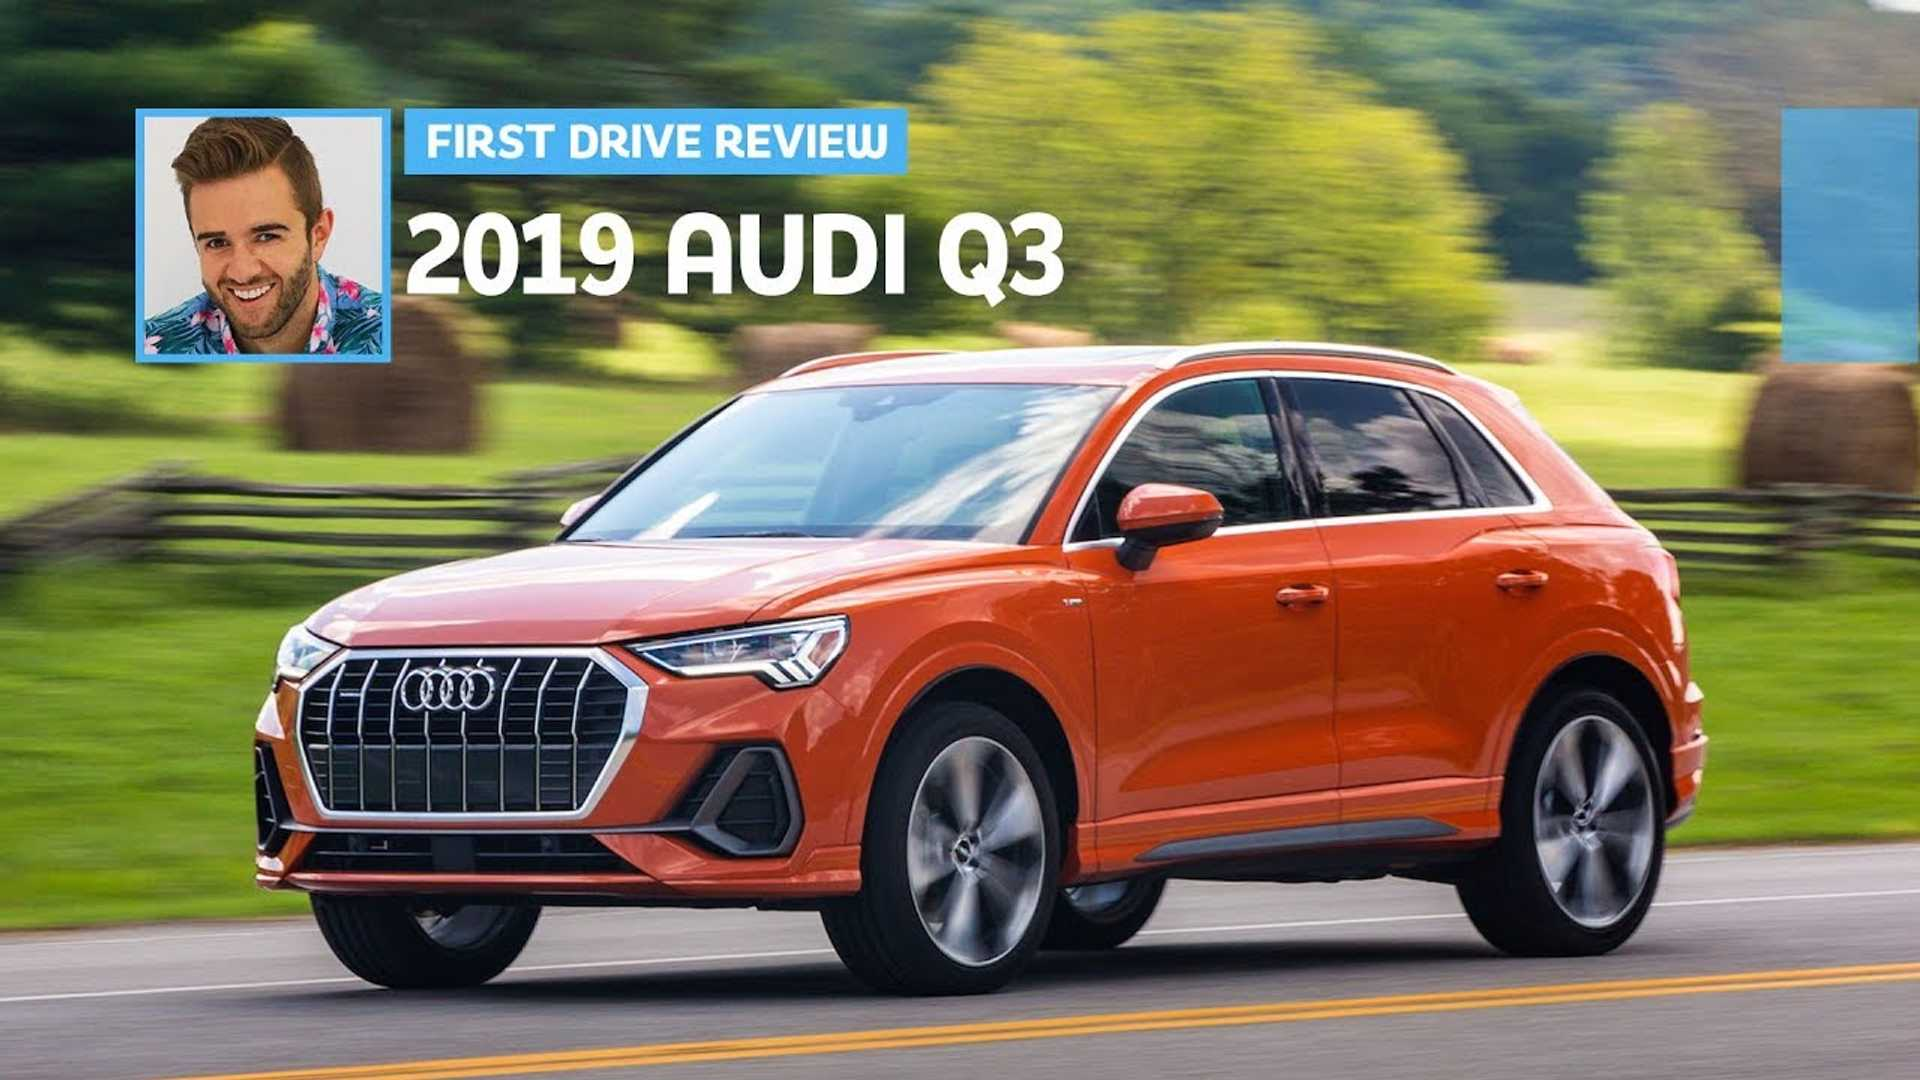 2019 Audi Q3 Video First Drive Review: Orangetacular